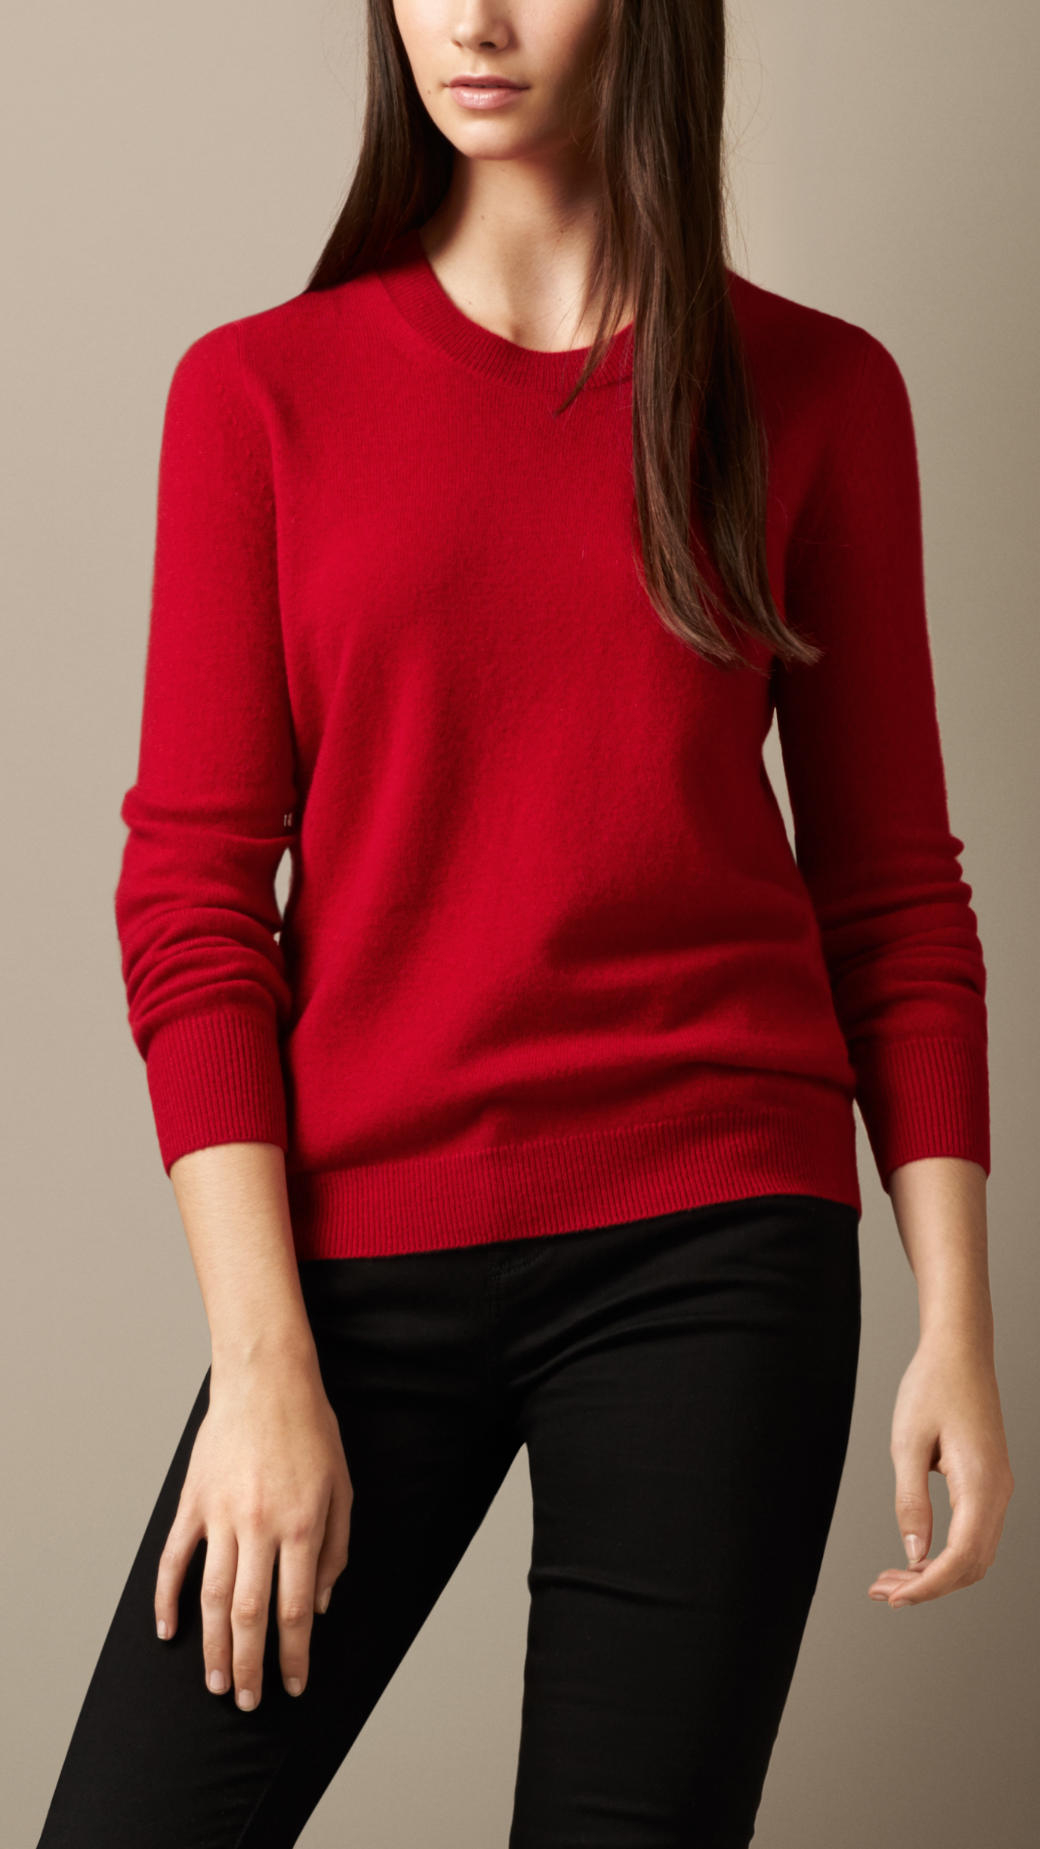 Cashmere Red Sweater Her Sweater